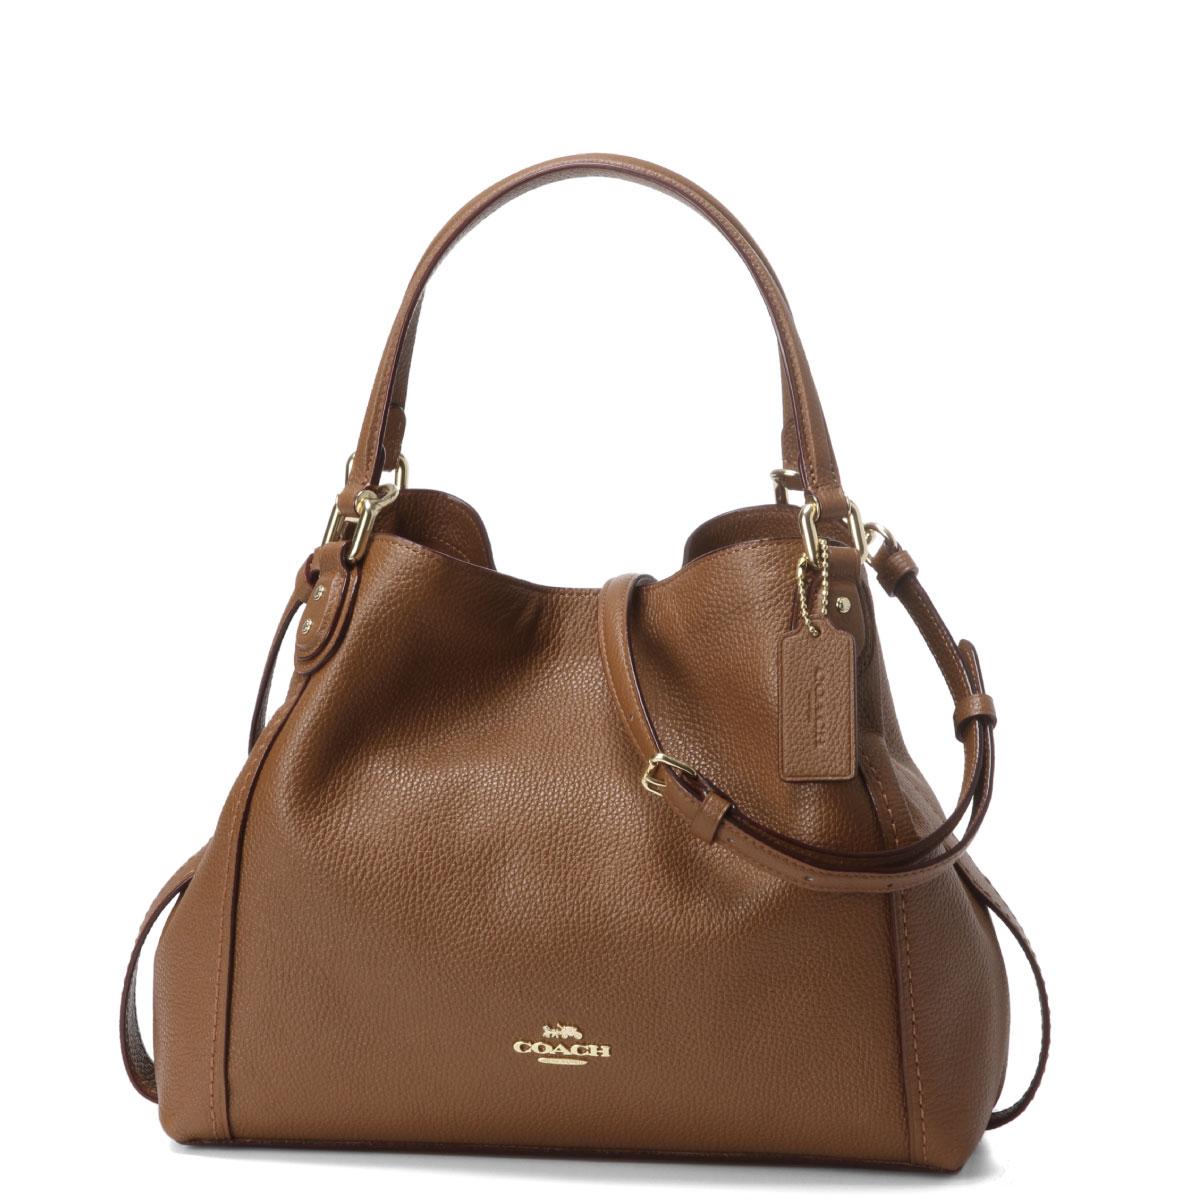 Lil4a Brown To Shoulders Lady Handbag Saddle Belonging Coach 28 57124 Bag Li1941 Edie Edy EHID2W9beY